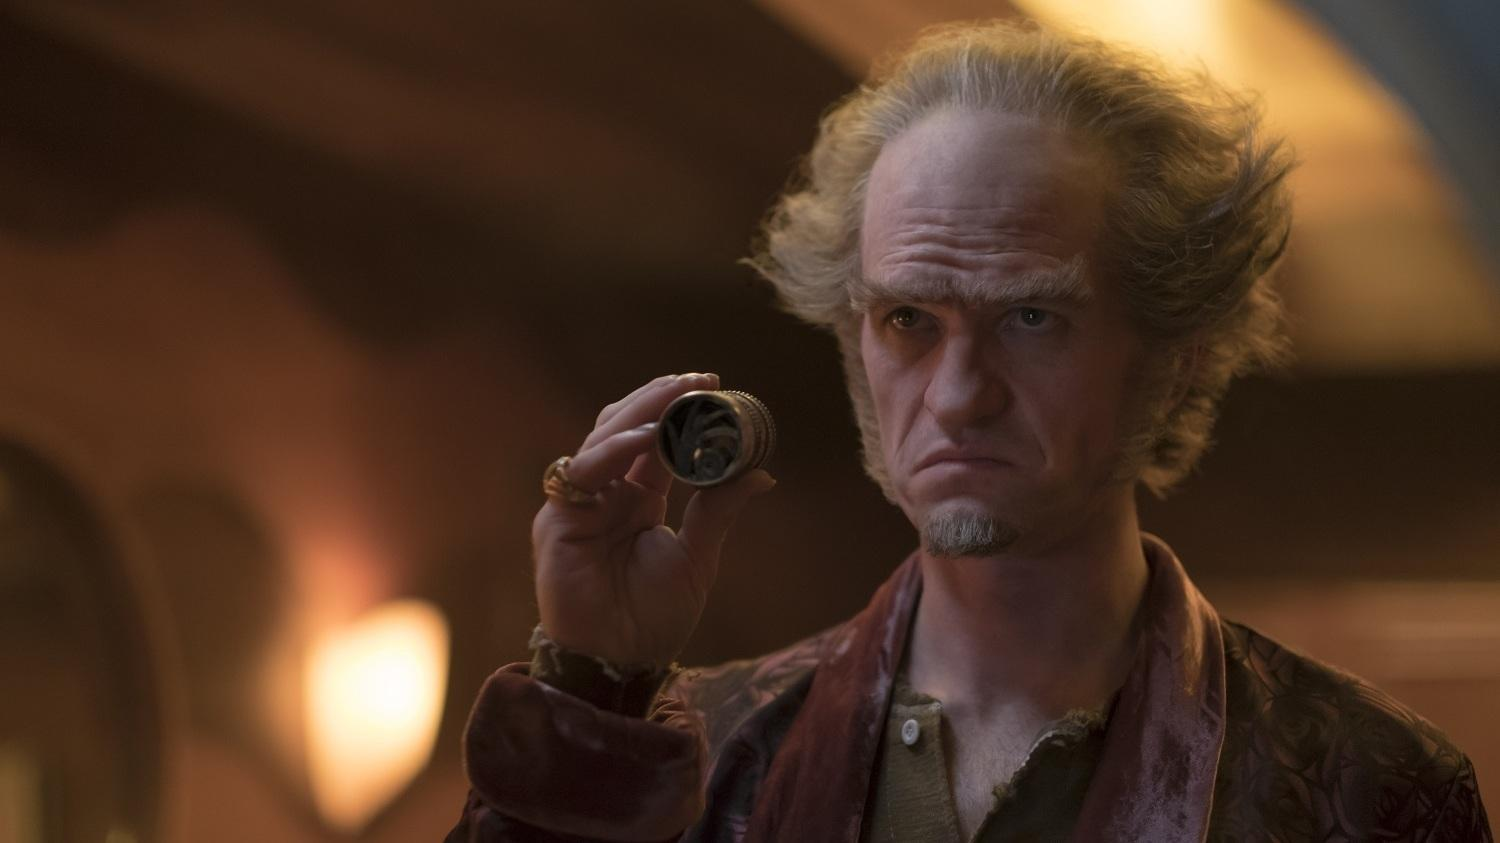 A Series Of Unfortunate Events' Is All About Olaf | WOSU Radio